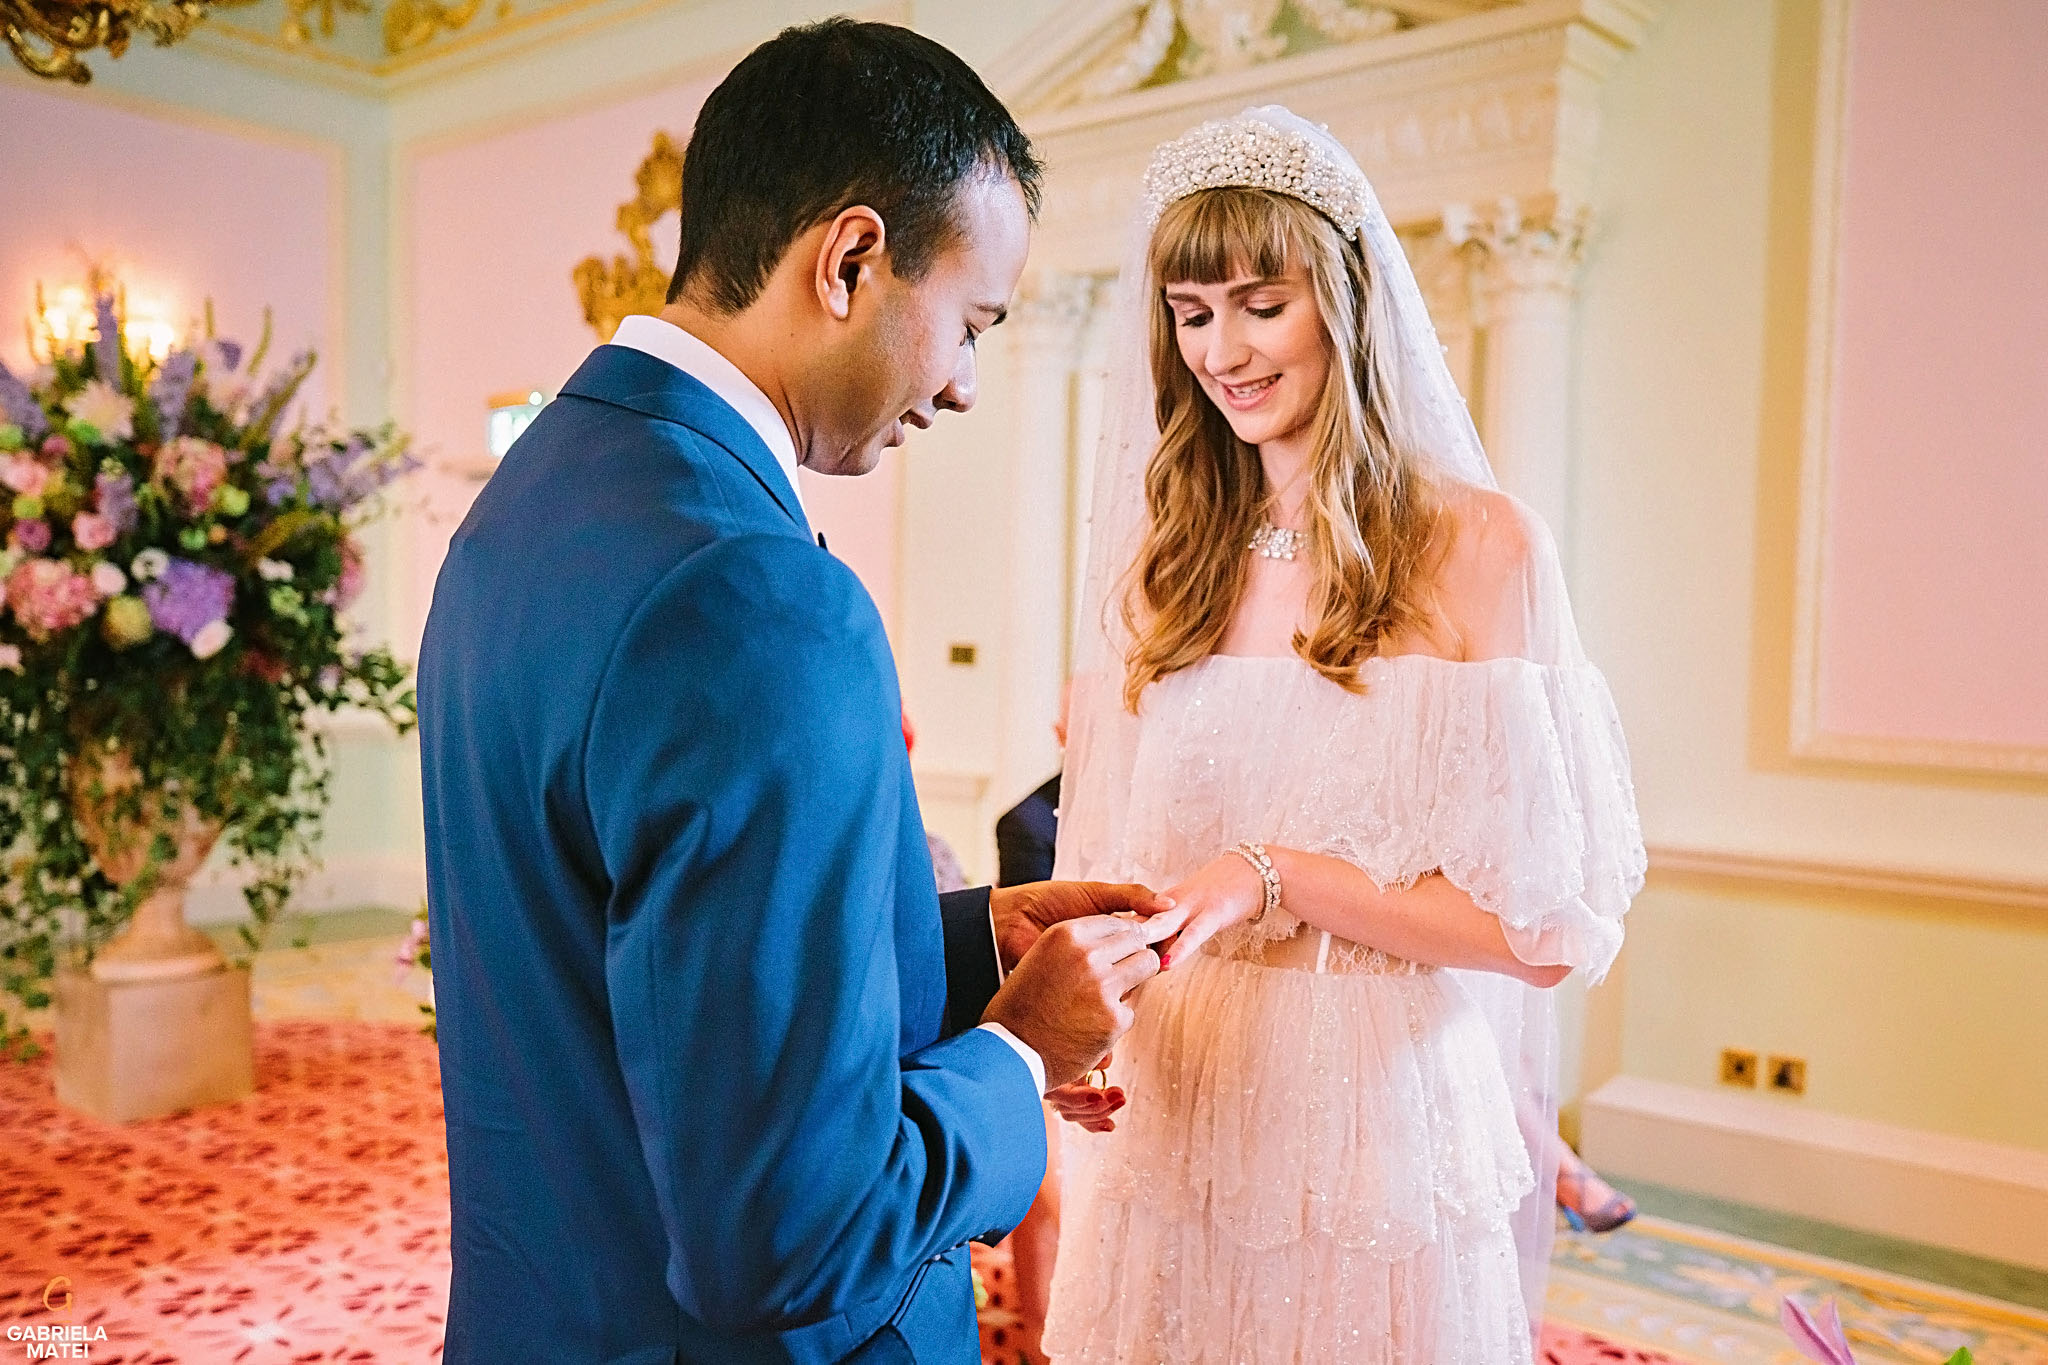 Groom placing the ring on the bride's finger during civil ceremony at The Ritz Hotel in London